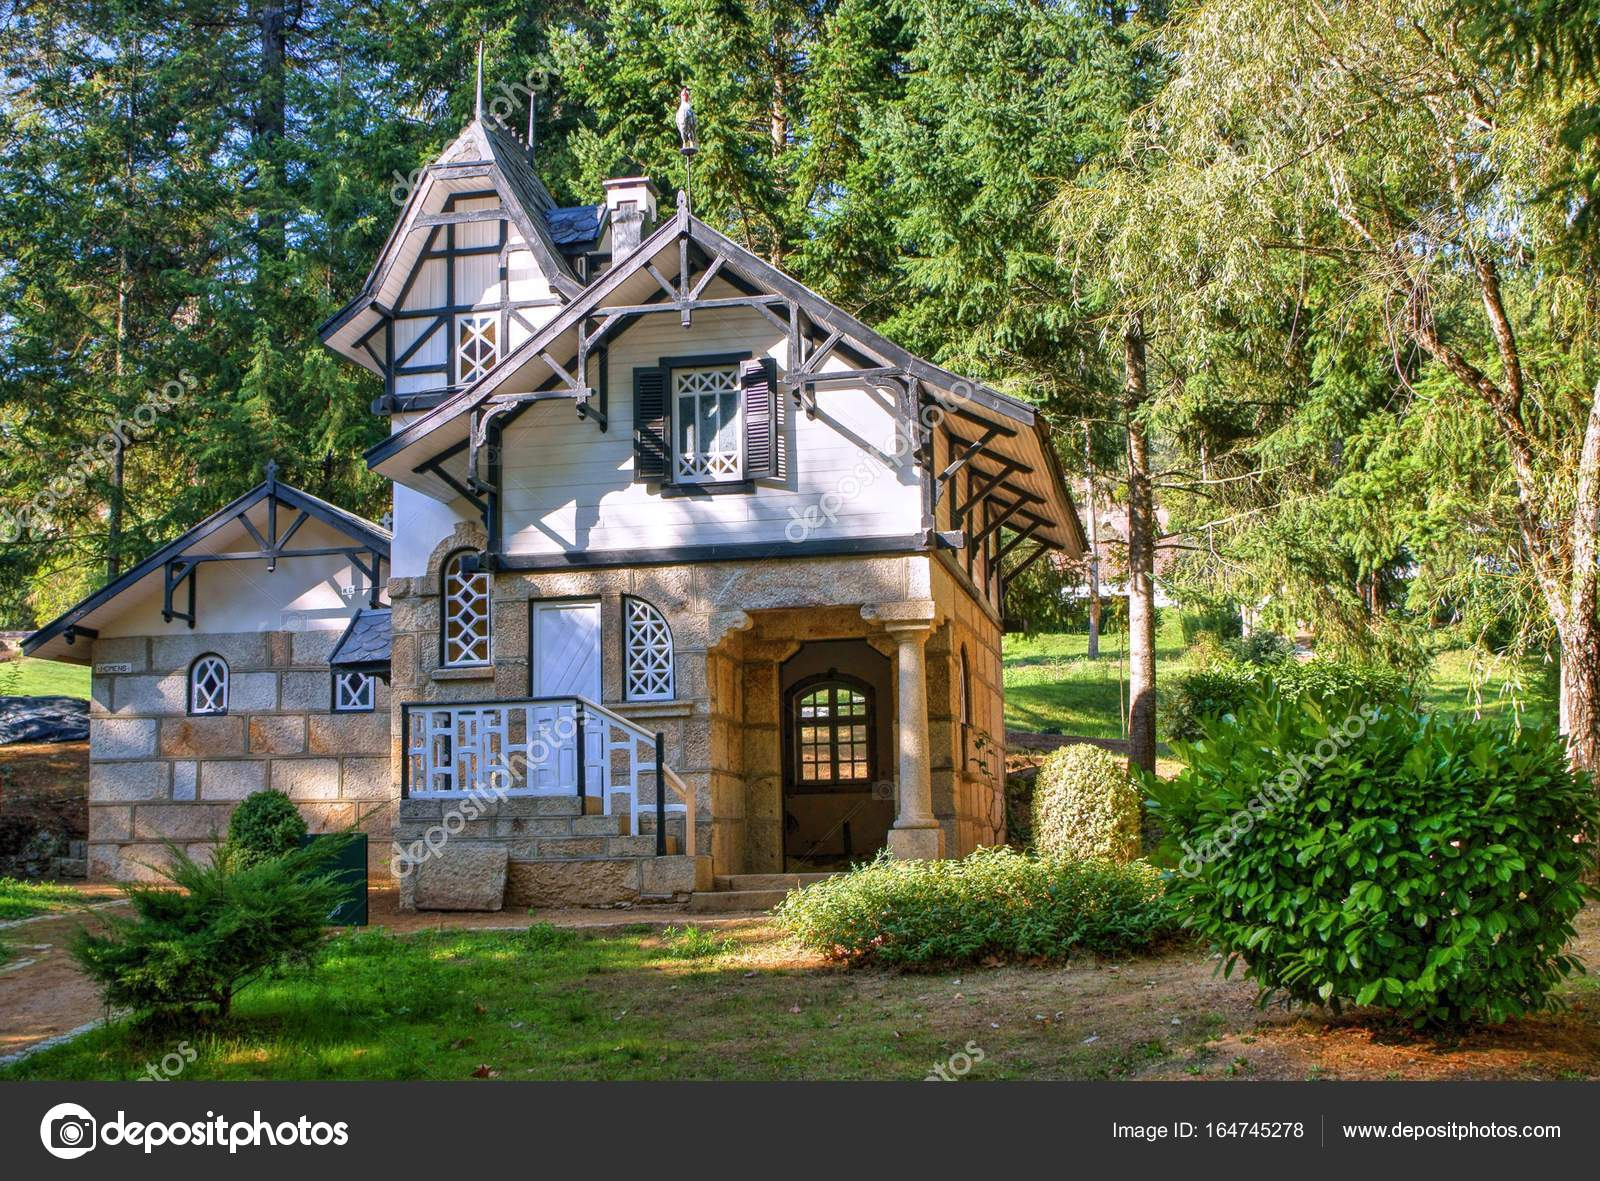 House in the garden, Vidago, Portugal